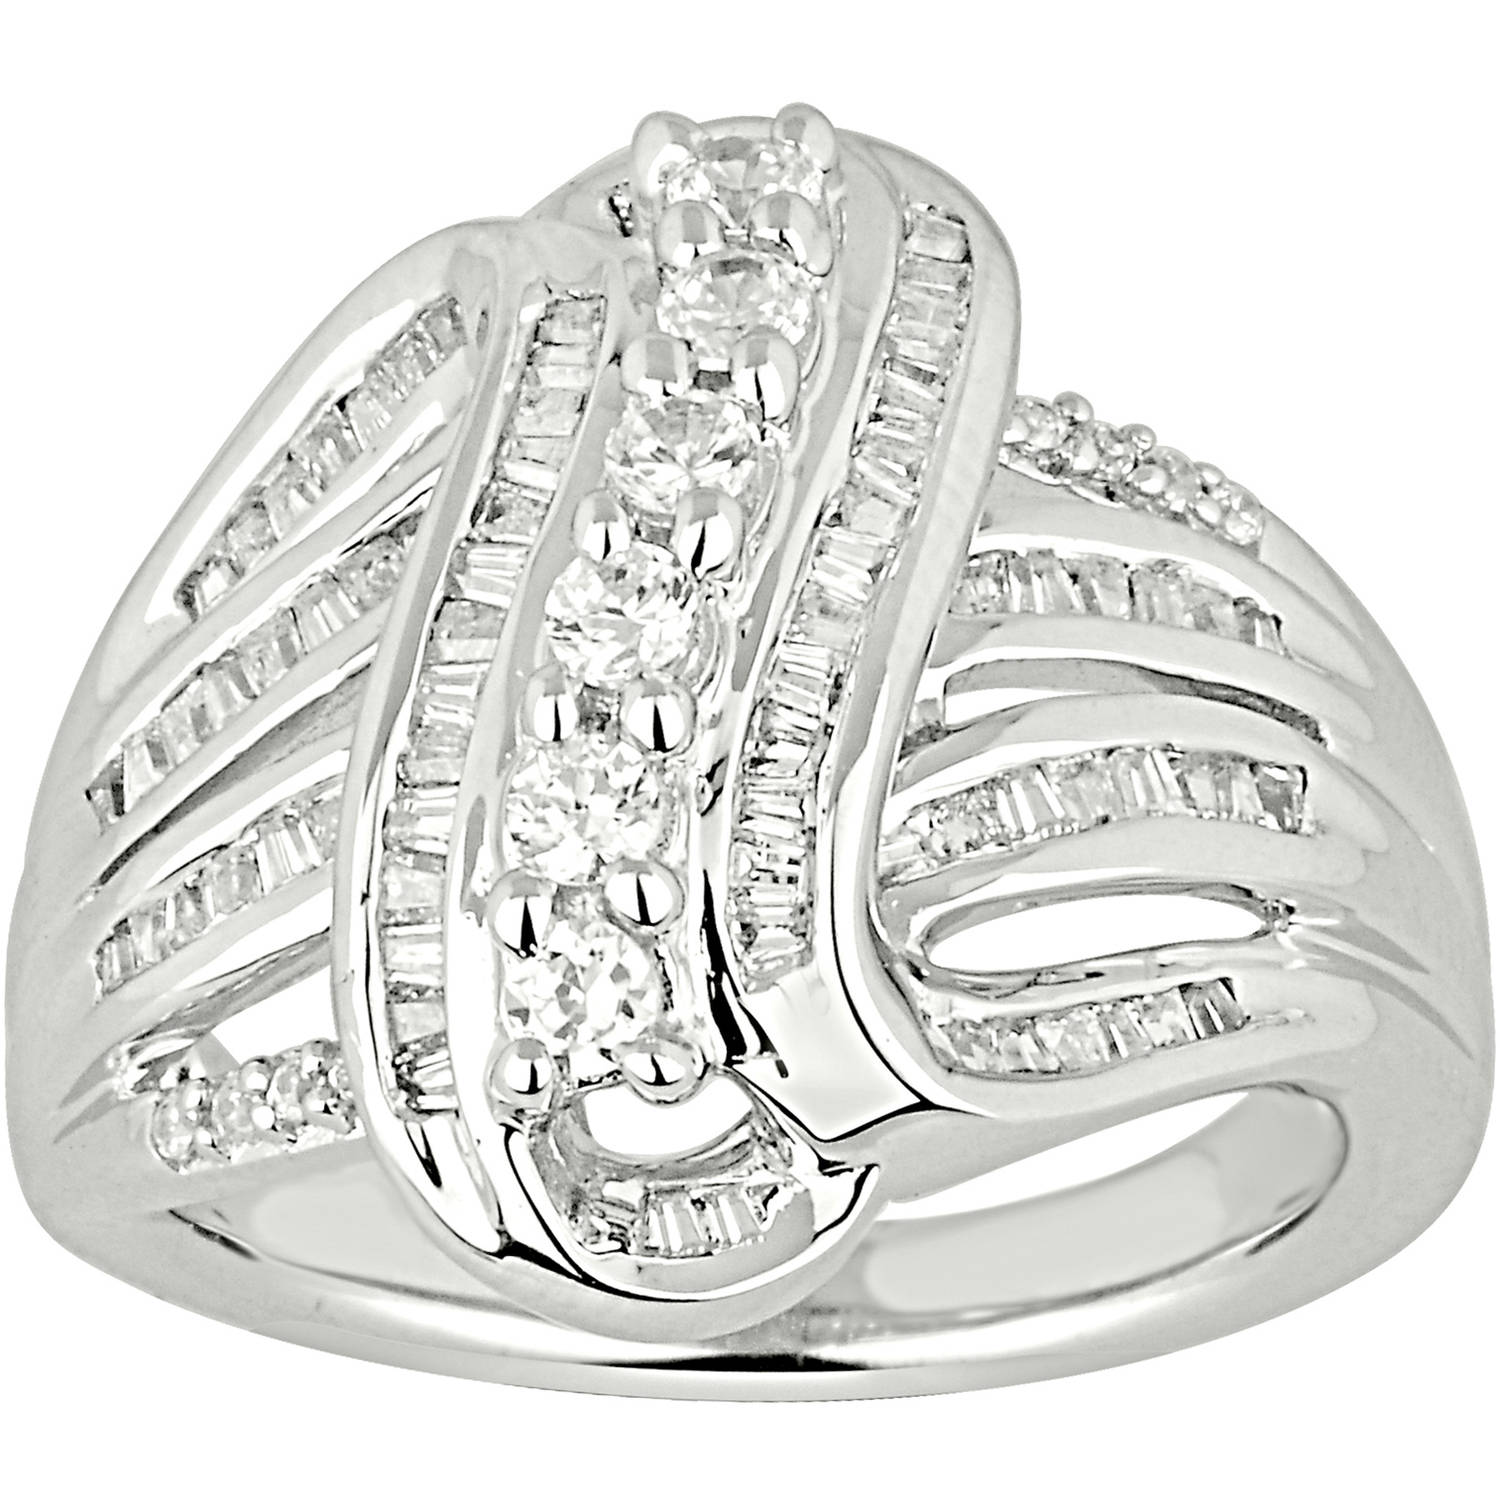 1 Carat T.W. Diamond 10kt White Gold Right-Hand Ring